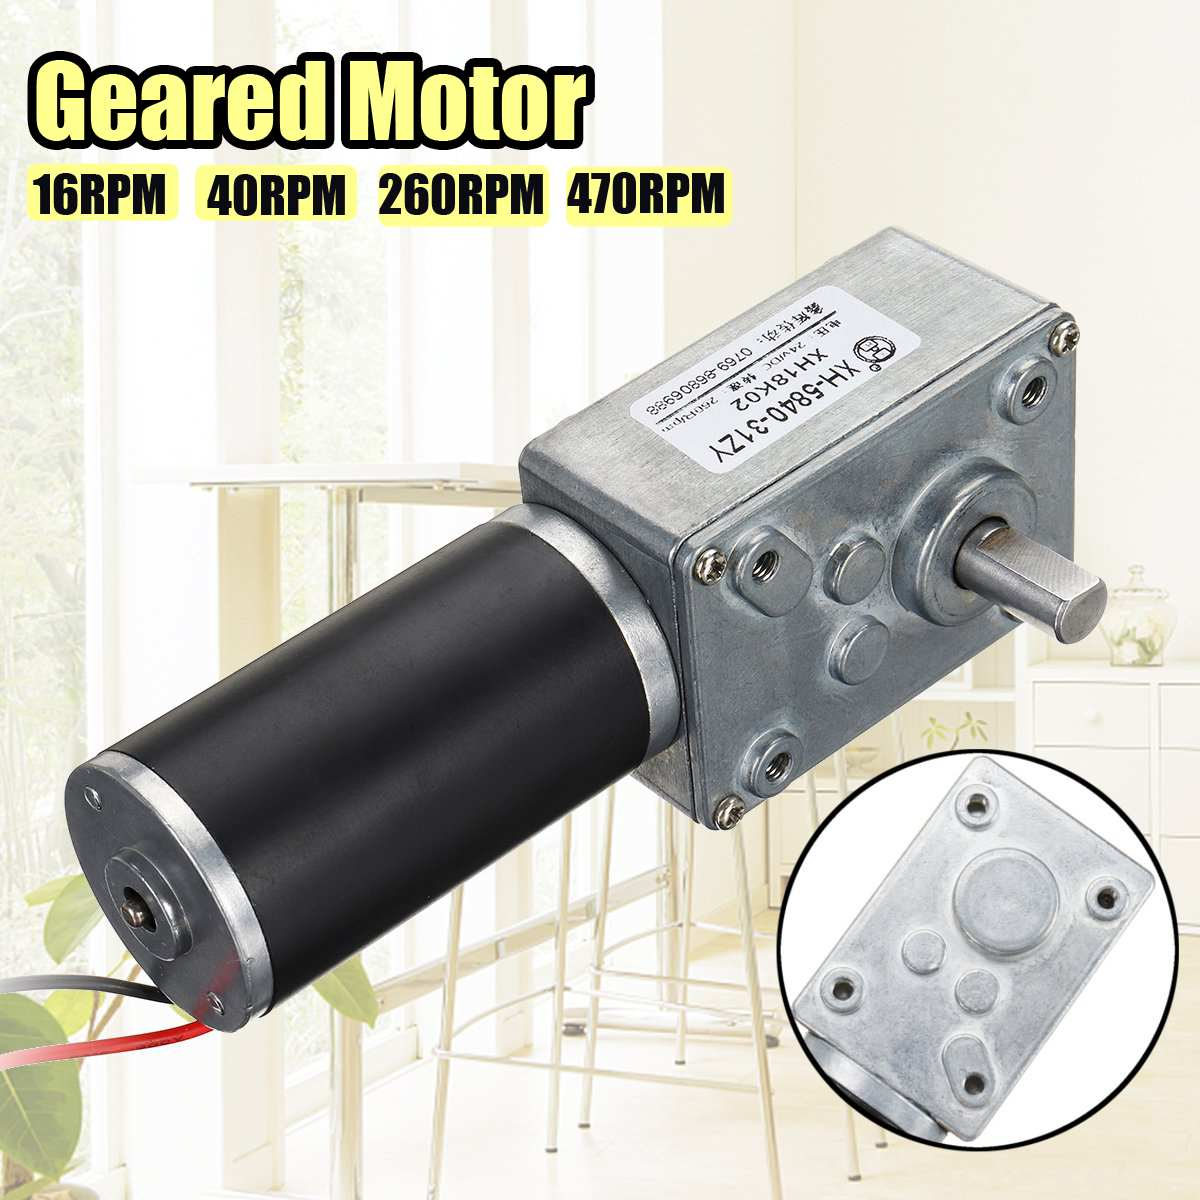 DC 24V Gear Reduction Motor Turbo Geared Motor 16/40/260/470RPM Mini Electric Gearbox Reducer For Intelligent Curtain MotorDC 24V Gear Reduction Motor Turbo Geared Motor 16/40/260/470RPM Mini Electric Gearbox Reducer For Intelligent Curtain Motor